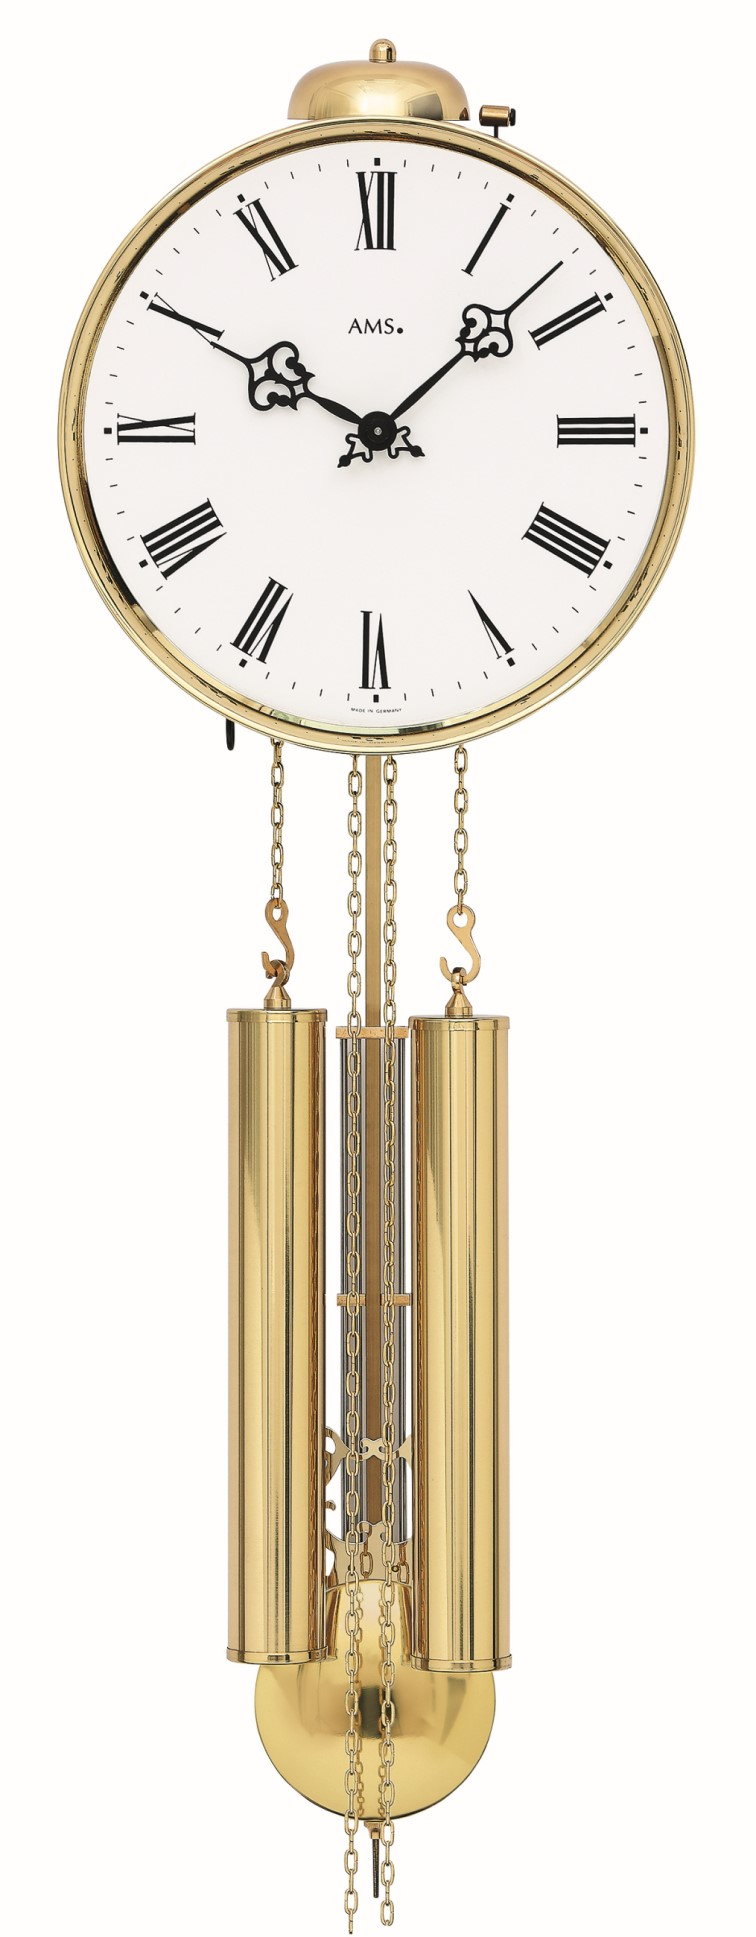 AMS 348 brass mechanical wallclock with strike